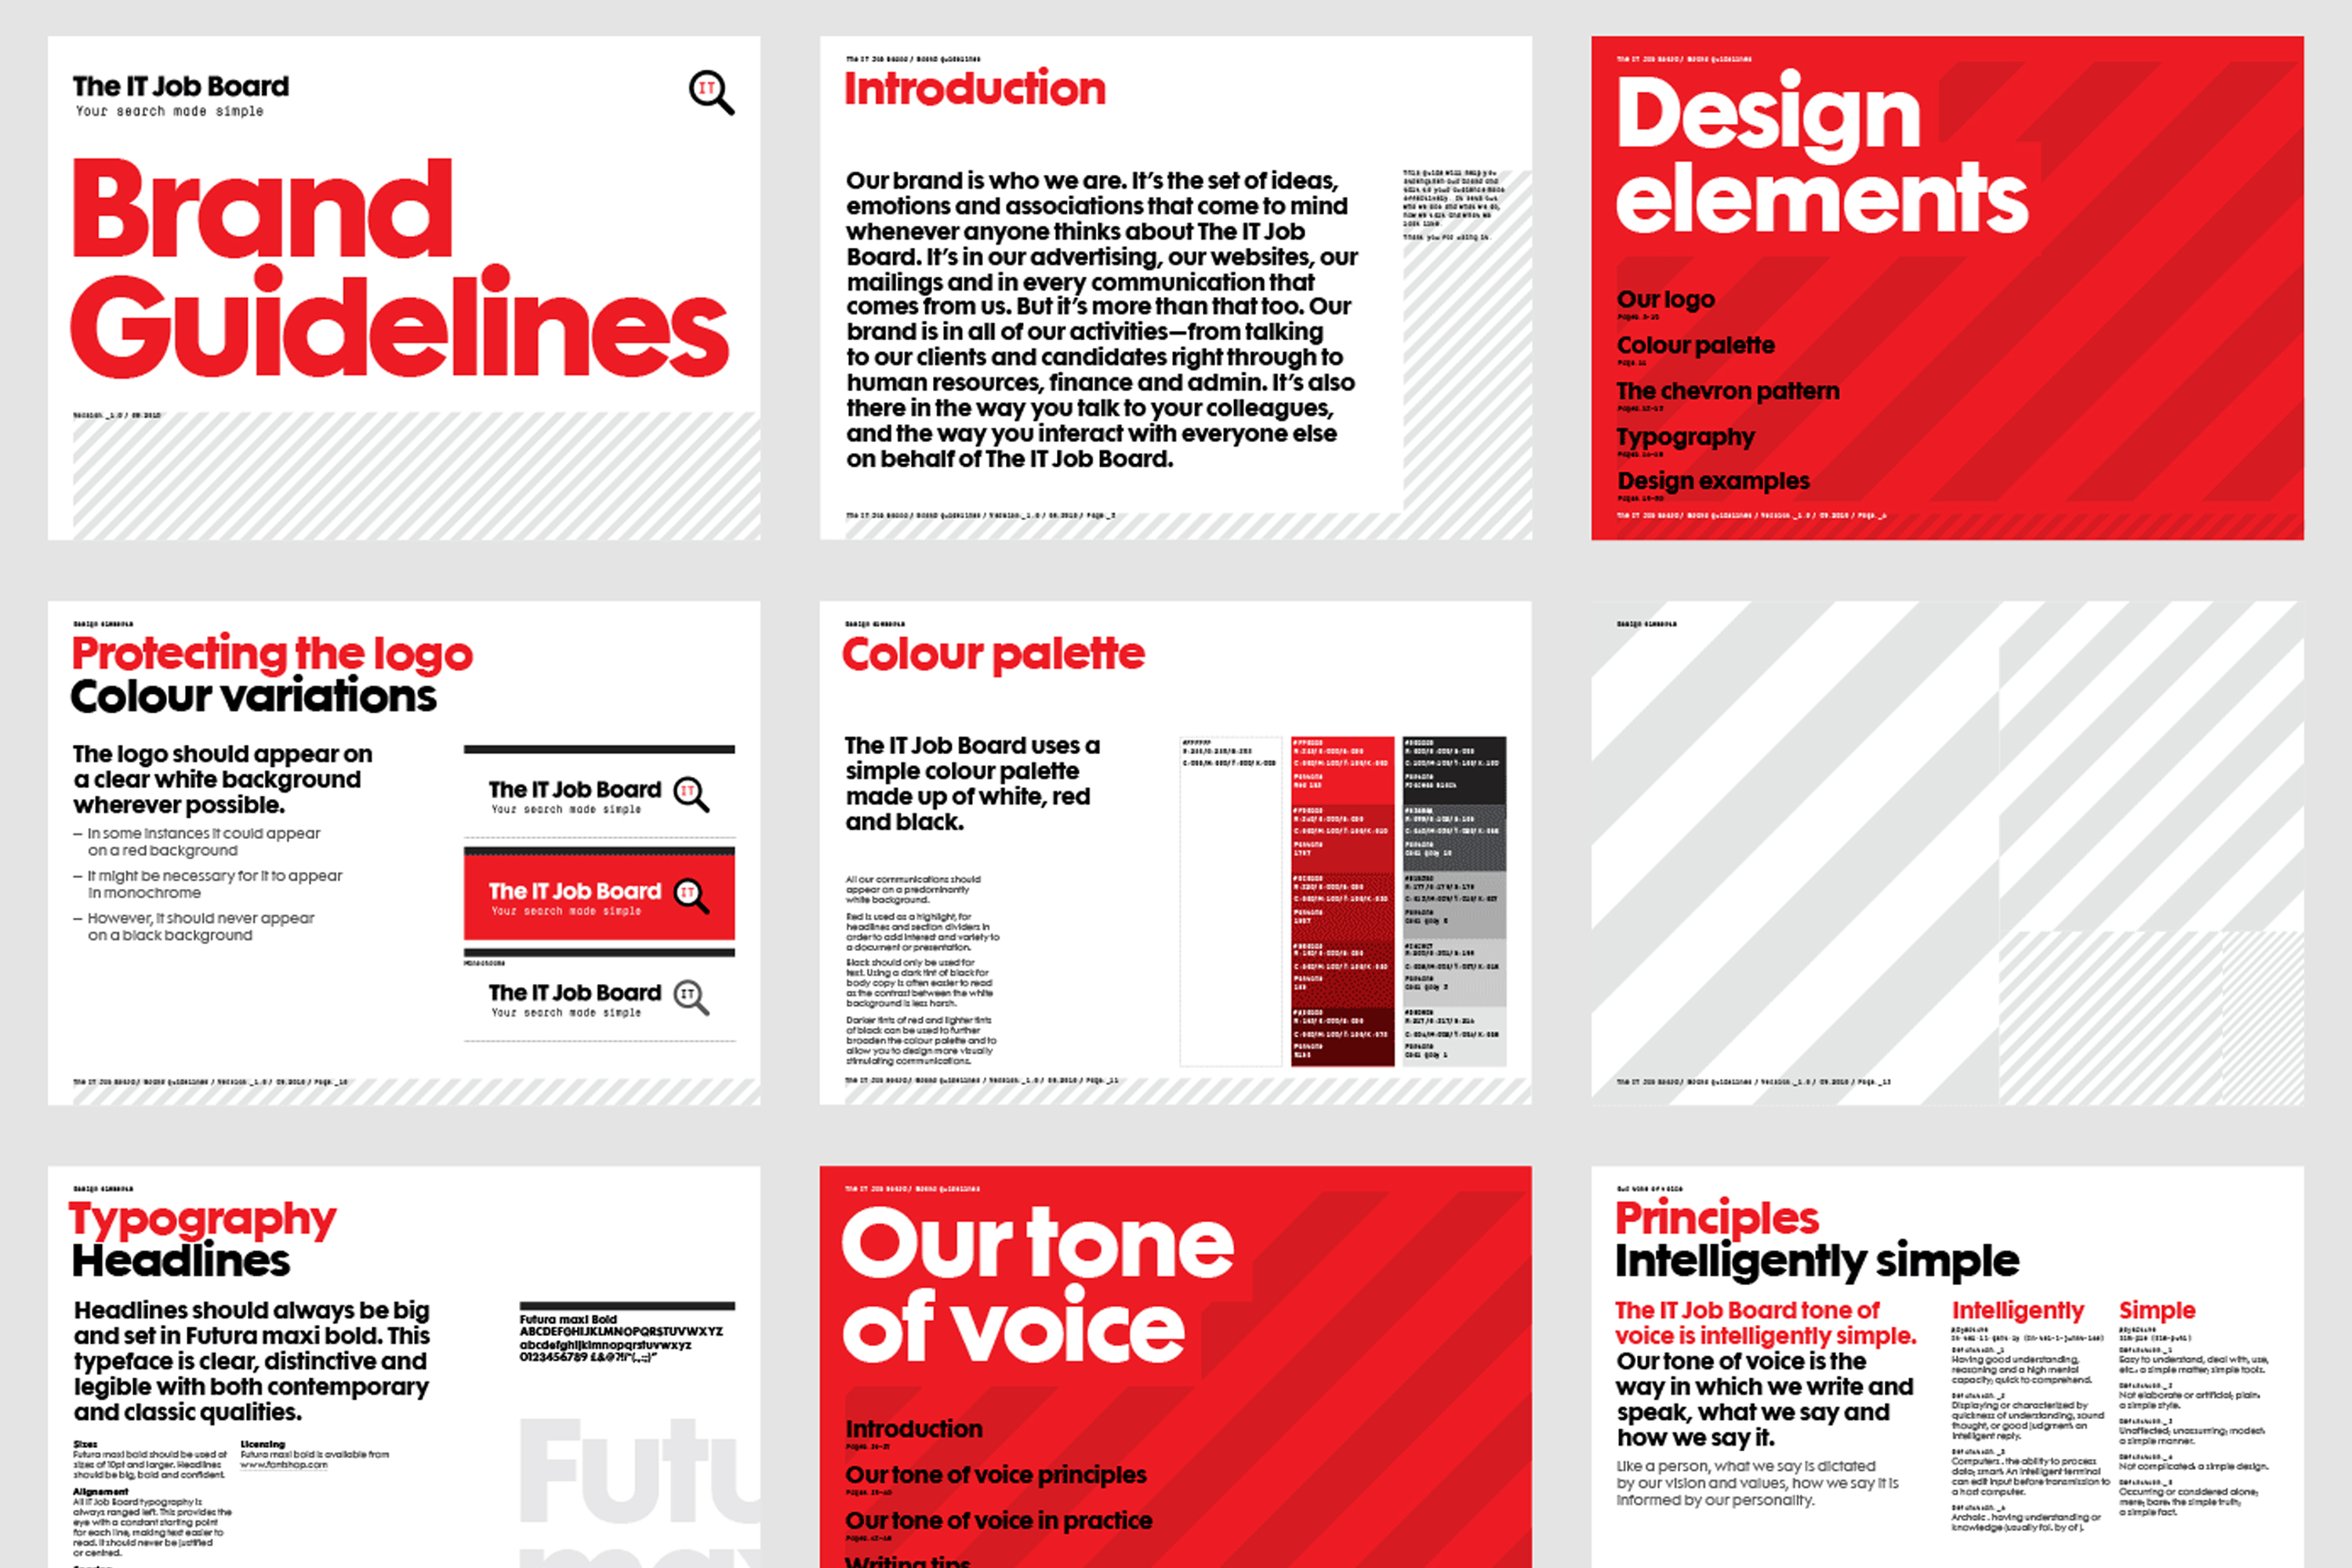 How do you make brand guidelines?